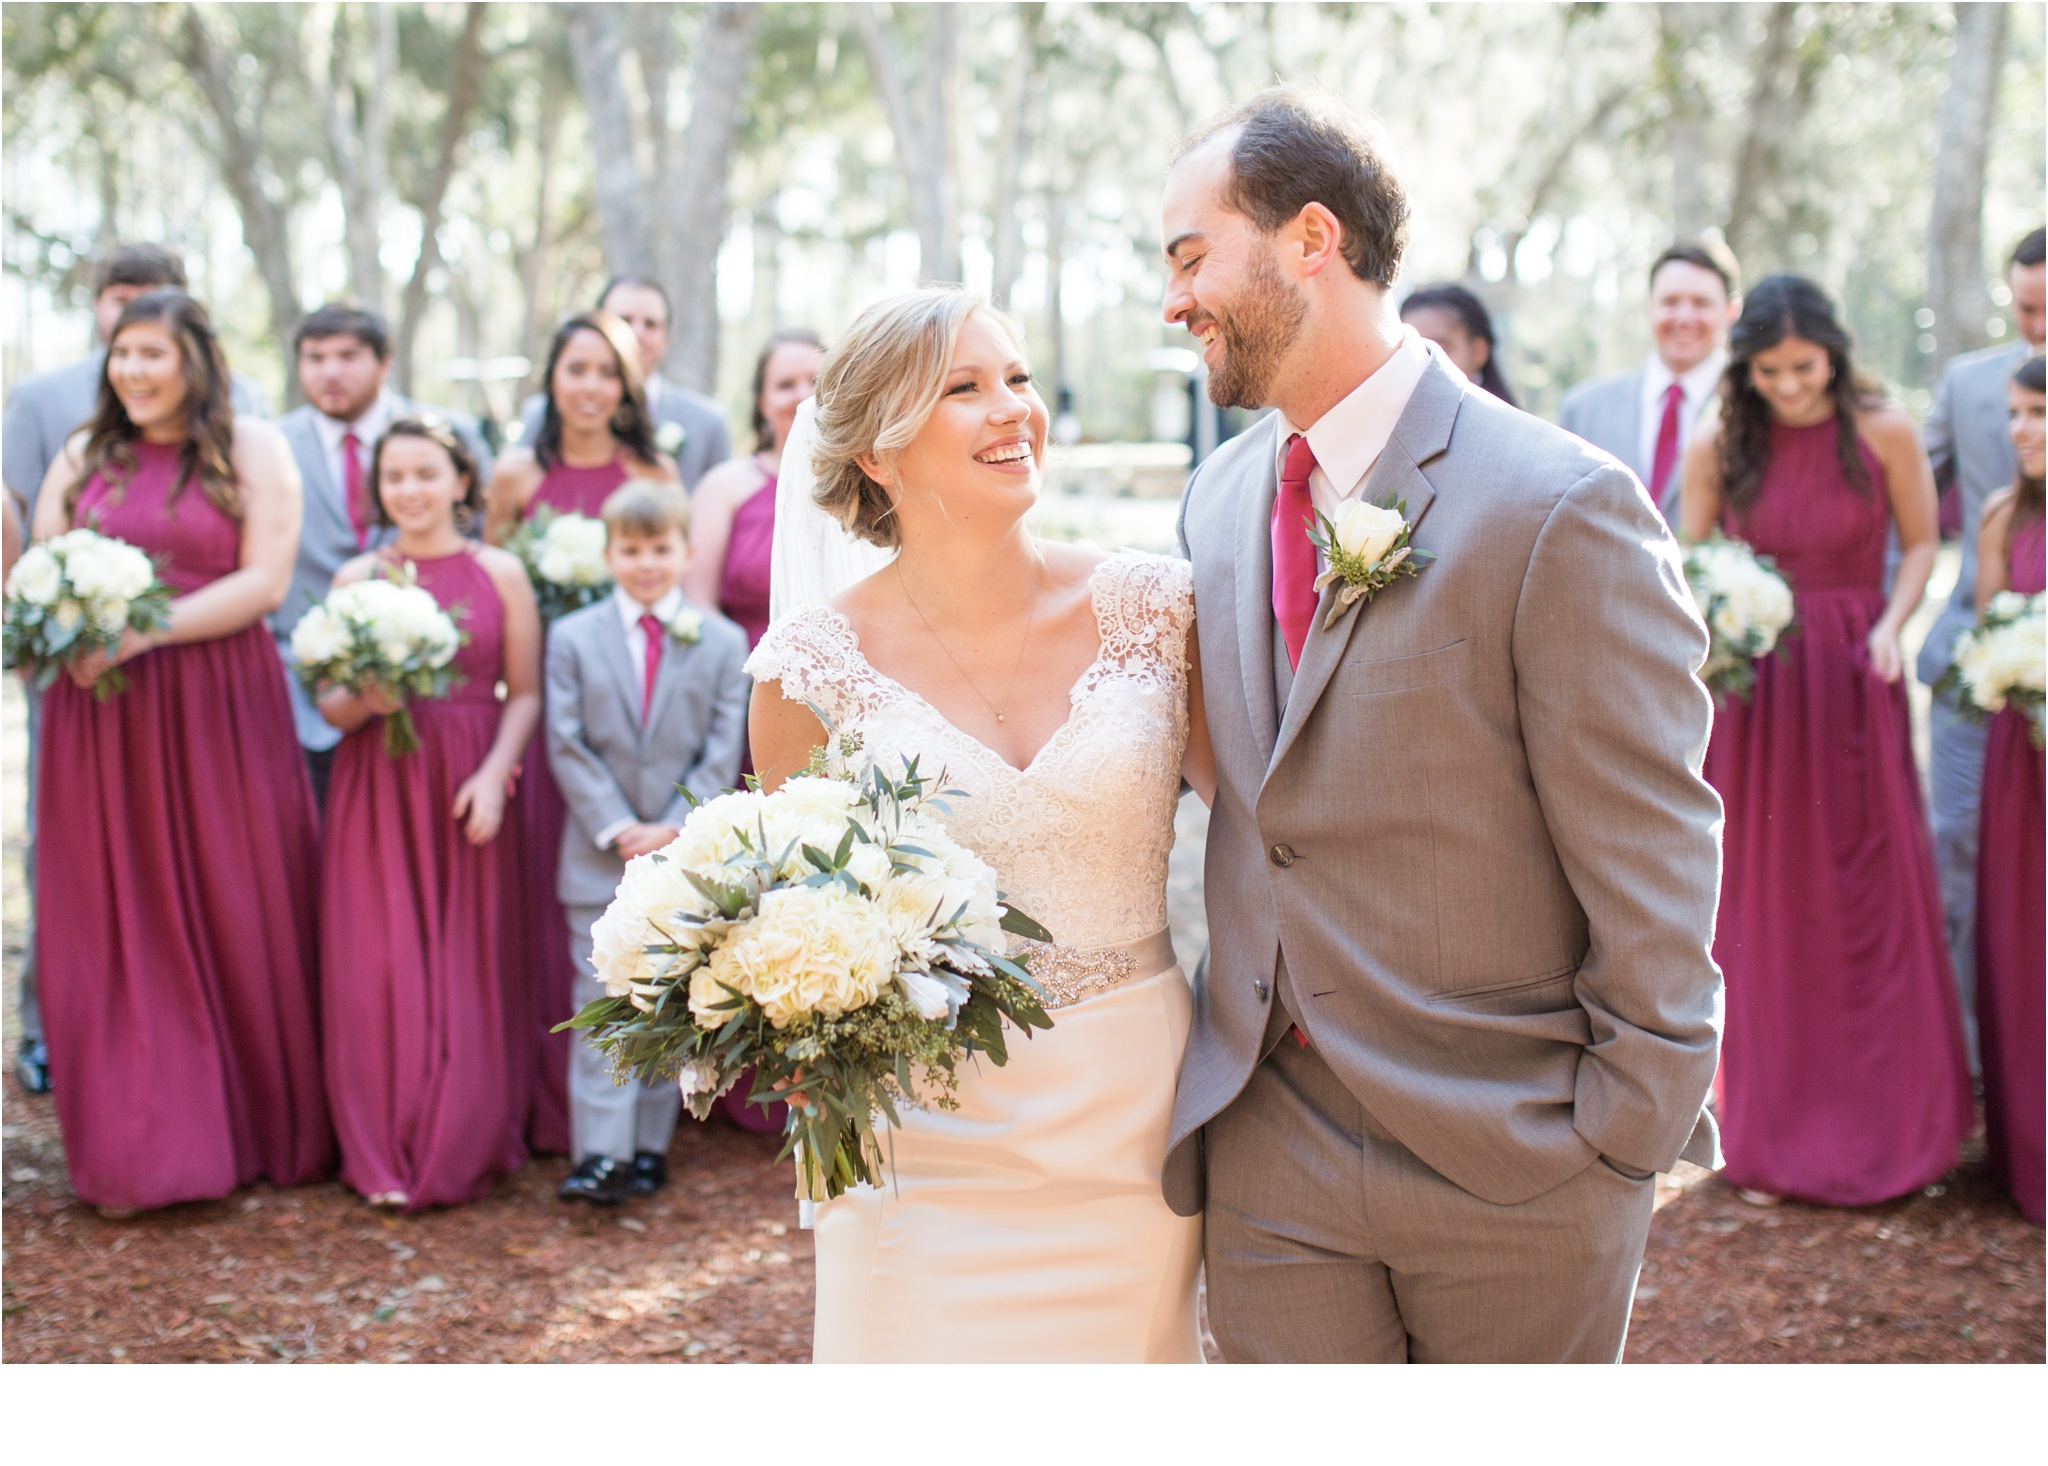 Rainey_Gregg_Photography_St._Simons_Island_Georgia_California_Wedding_Portrait_Photography_0512.jpg